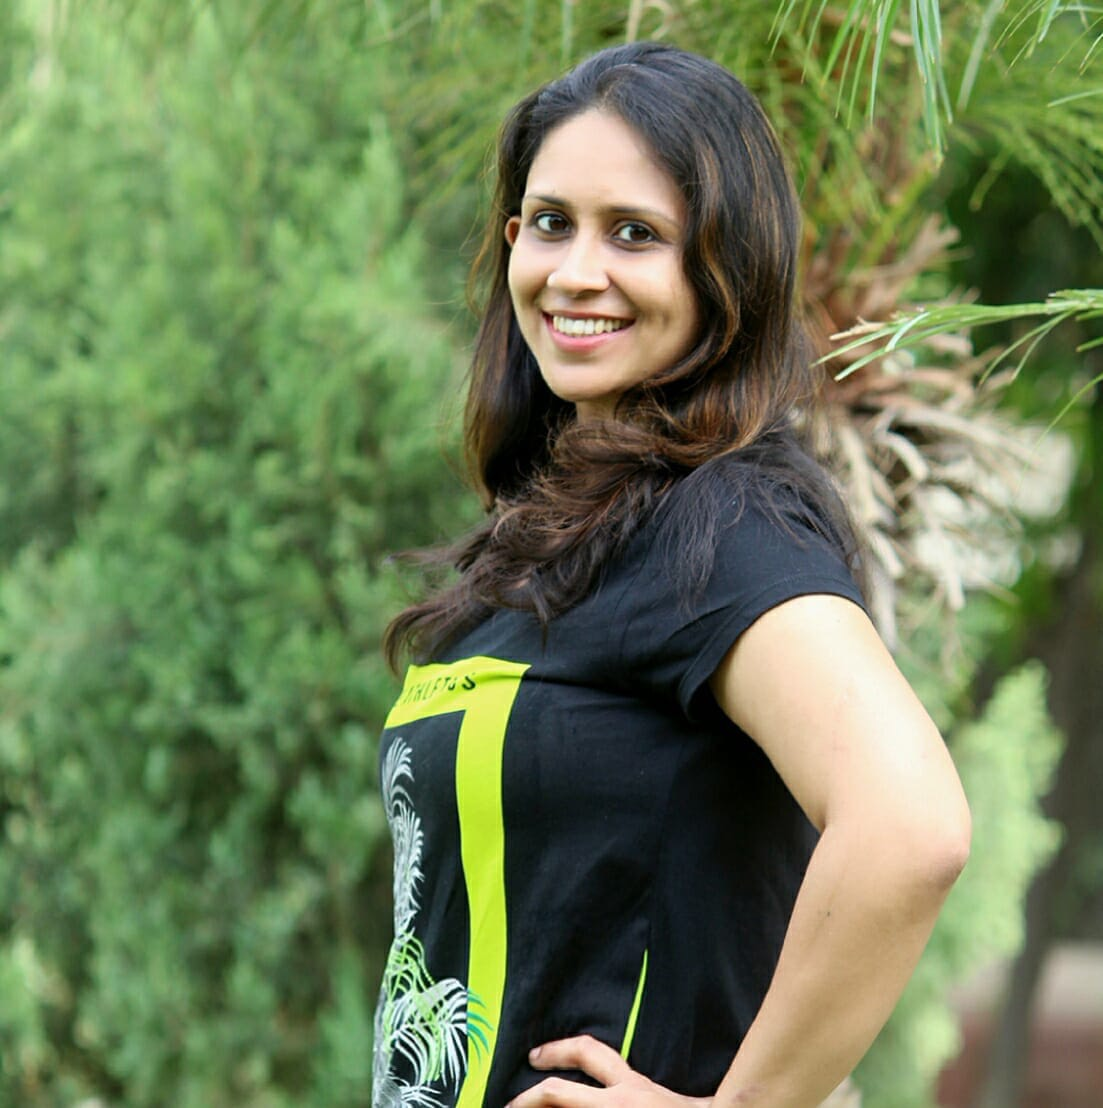 WinningStree Of The Week – Ruchi Saxena Tells Us How To Get Fit The Happy Way